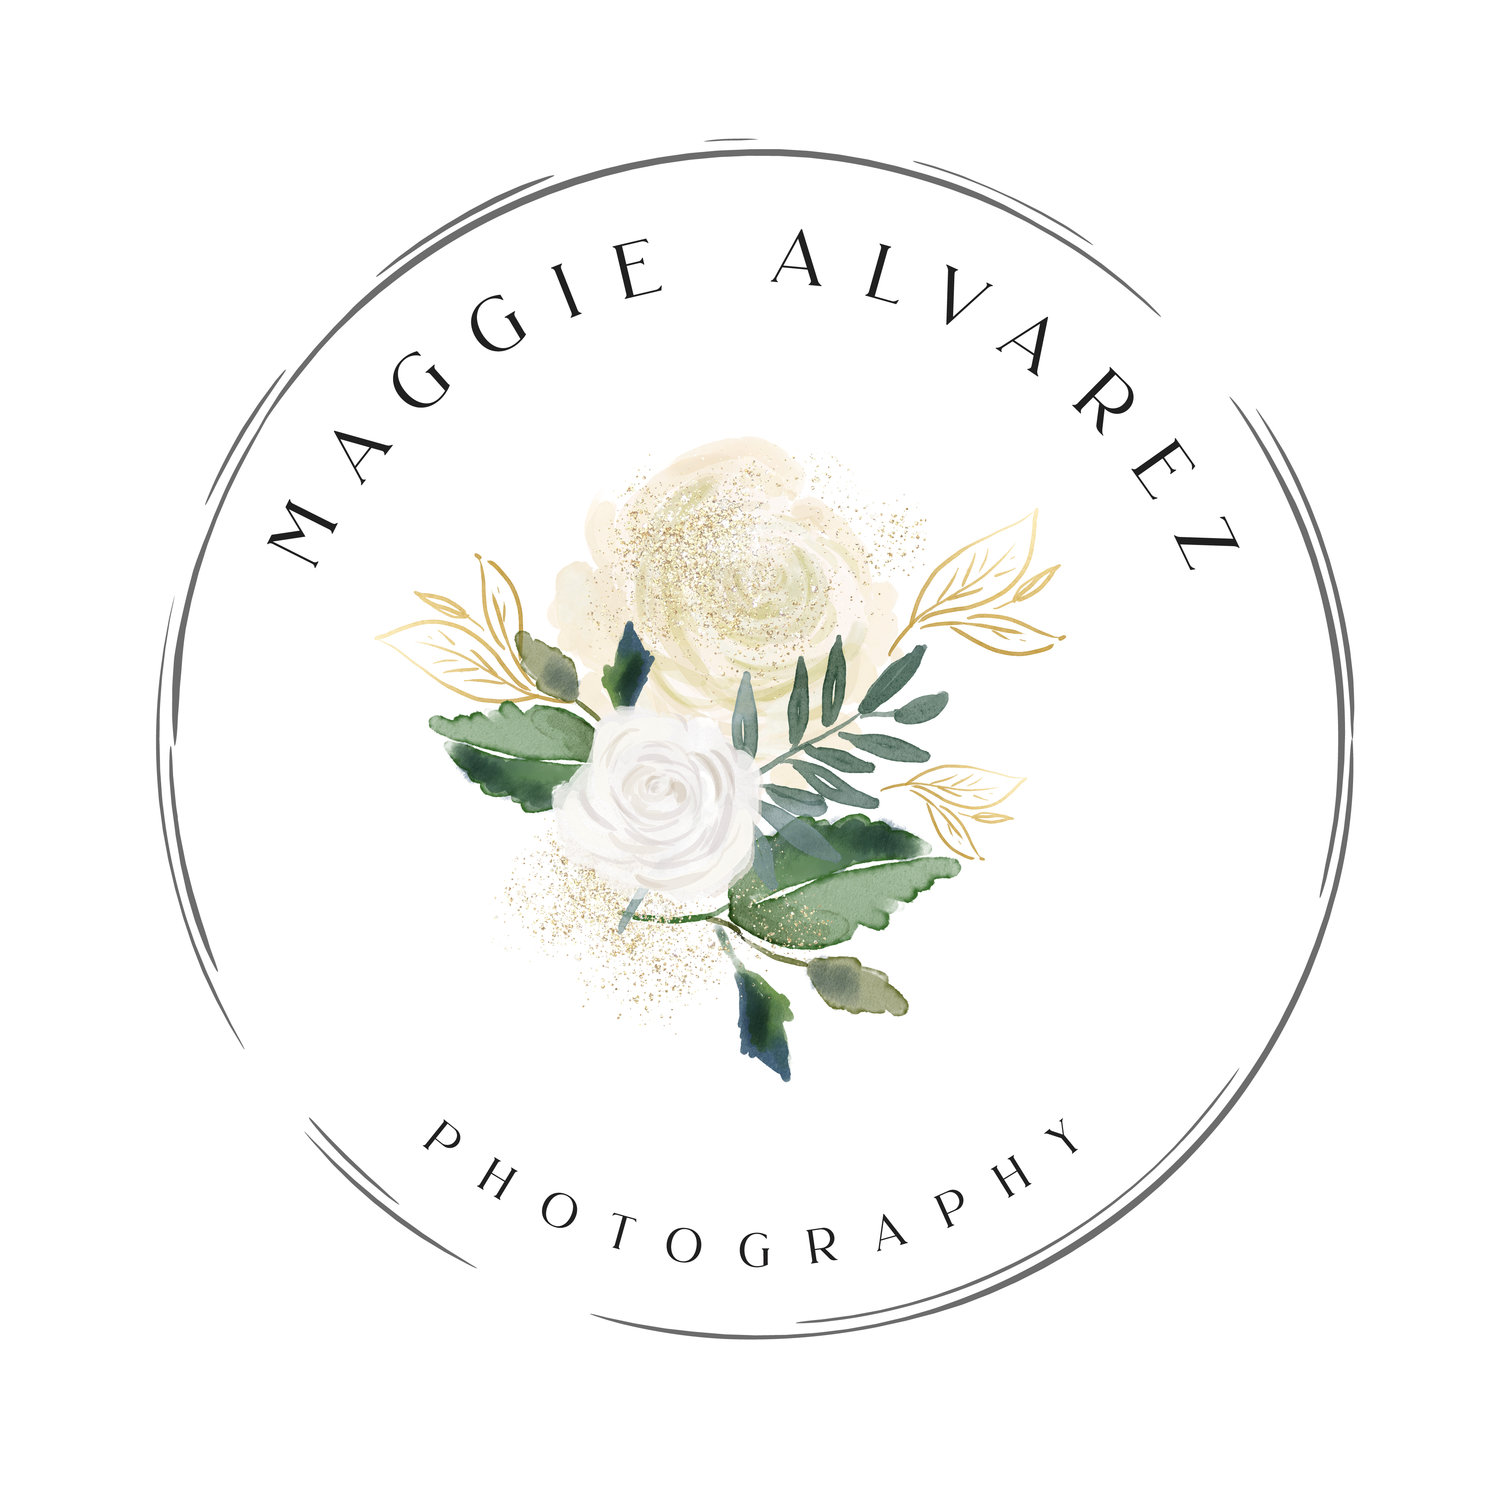 Maggie Alvarez Photography, LLC